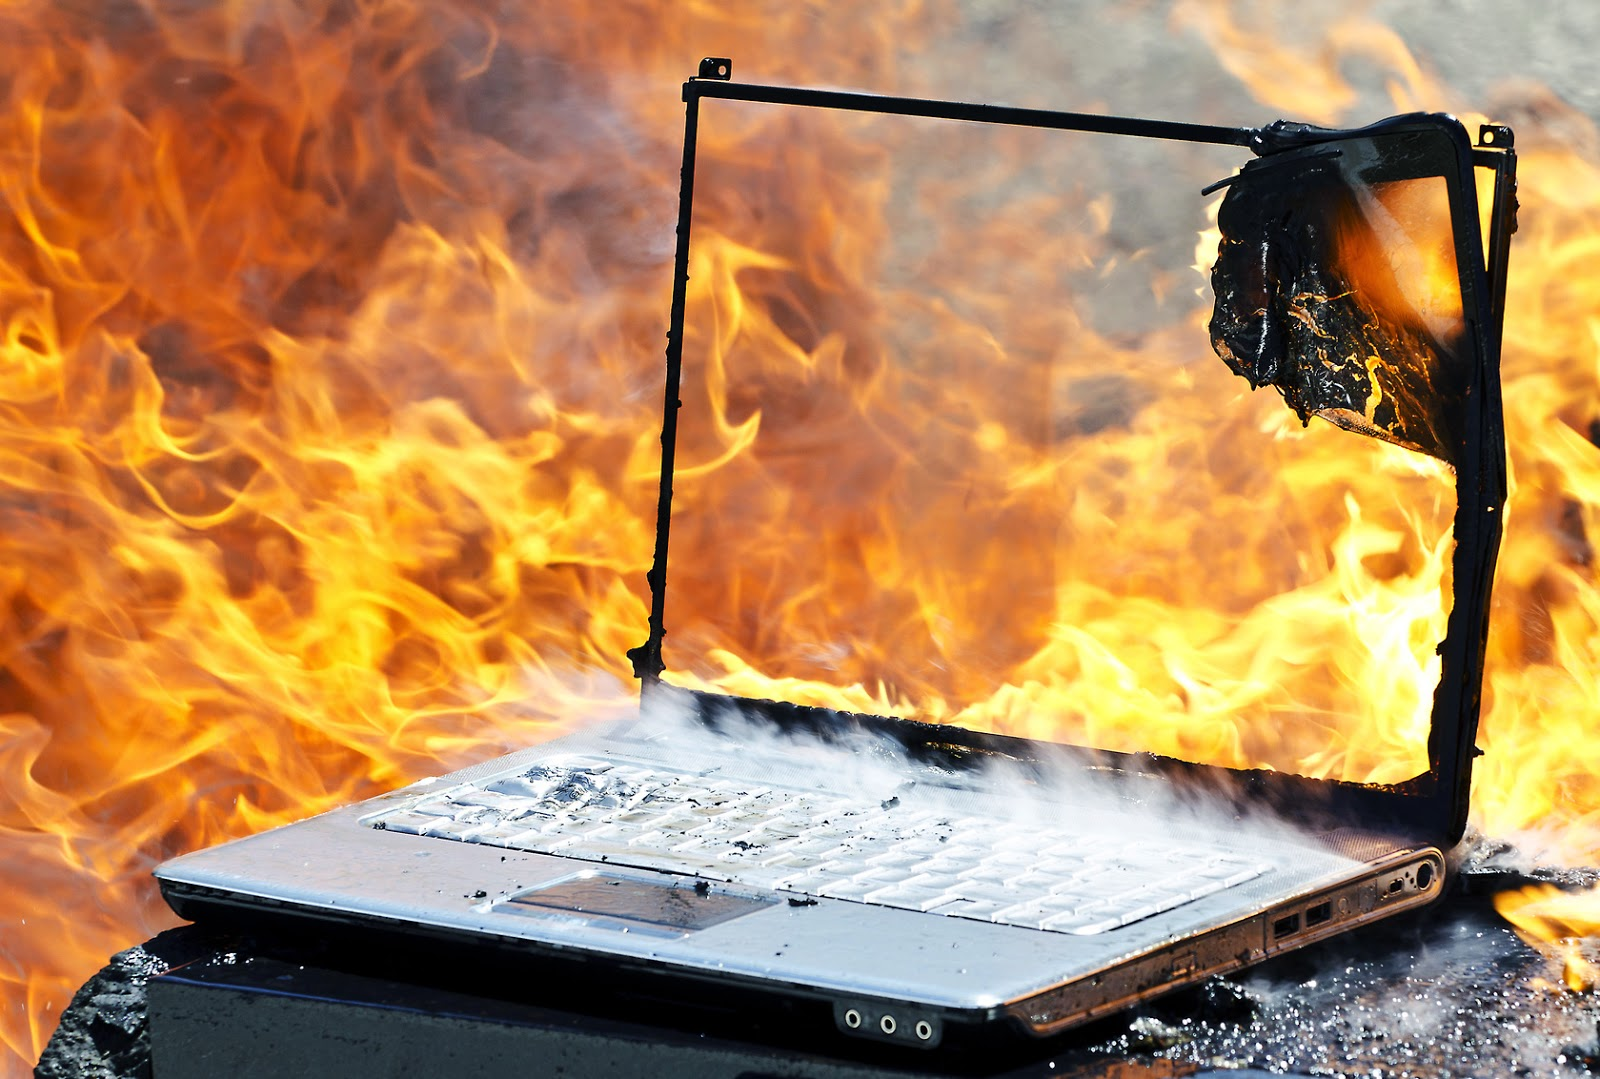 Avoid The Blaze: Top 5 Fire Risks To Your Business